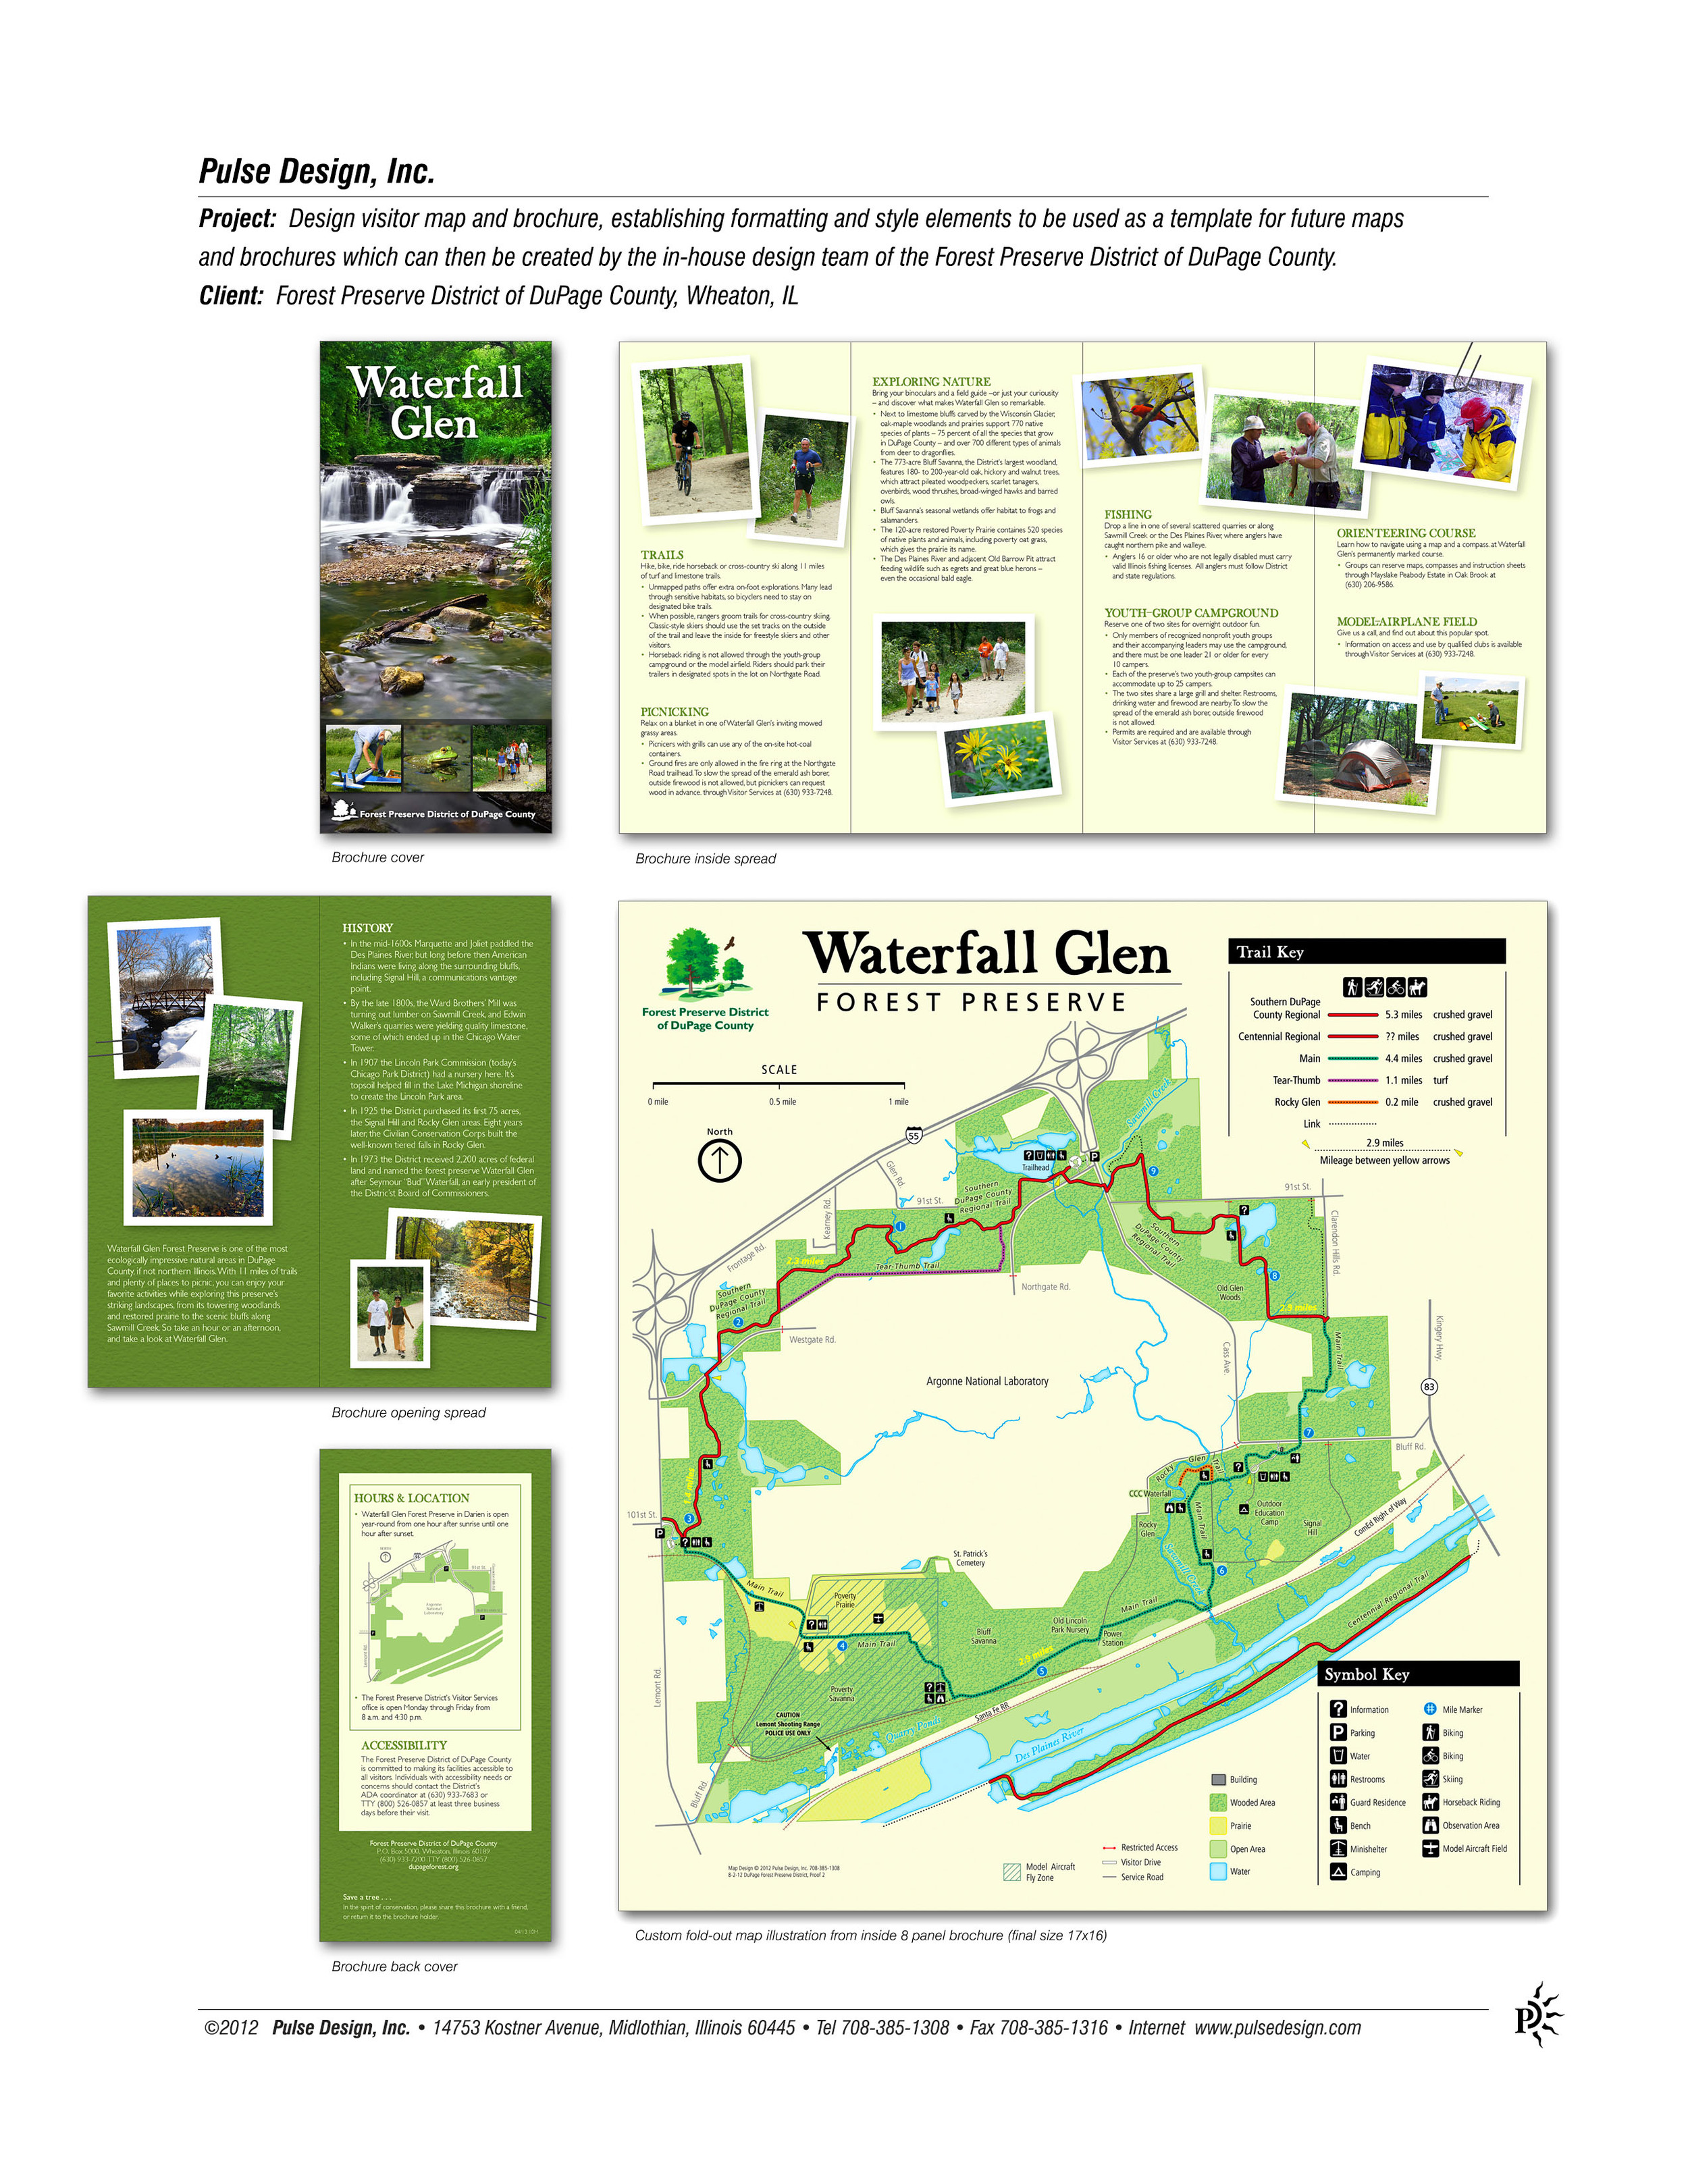 Dupage-Forest-Preserve-Waterfall-Glen-Map-Brochure-Sm-Pulse-Design-Inc.jpg